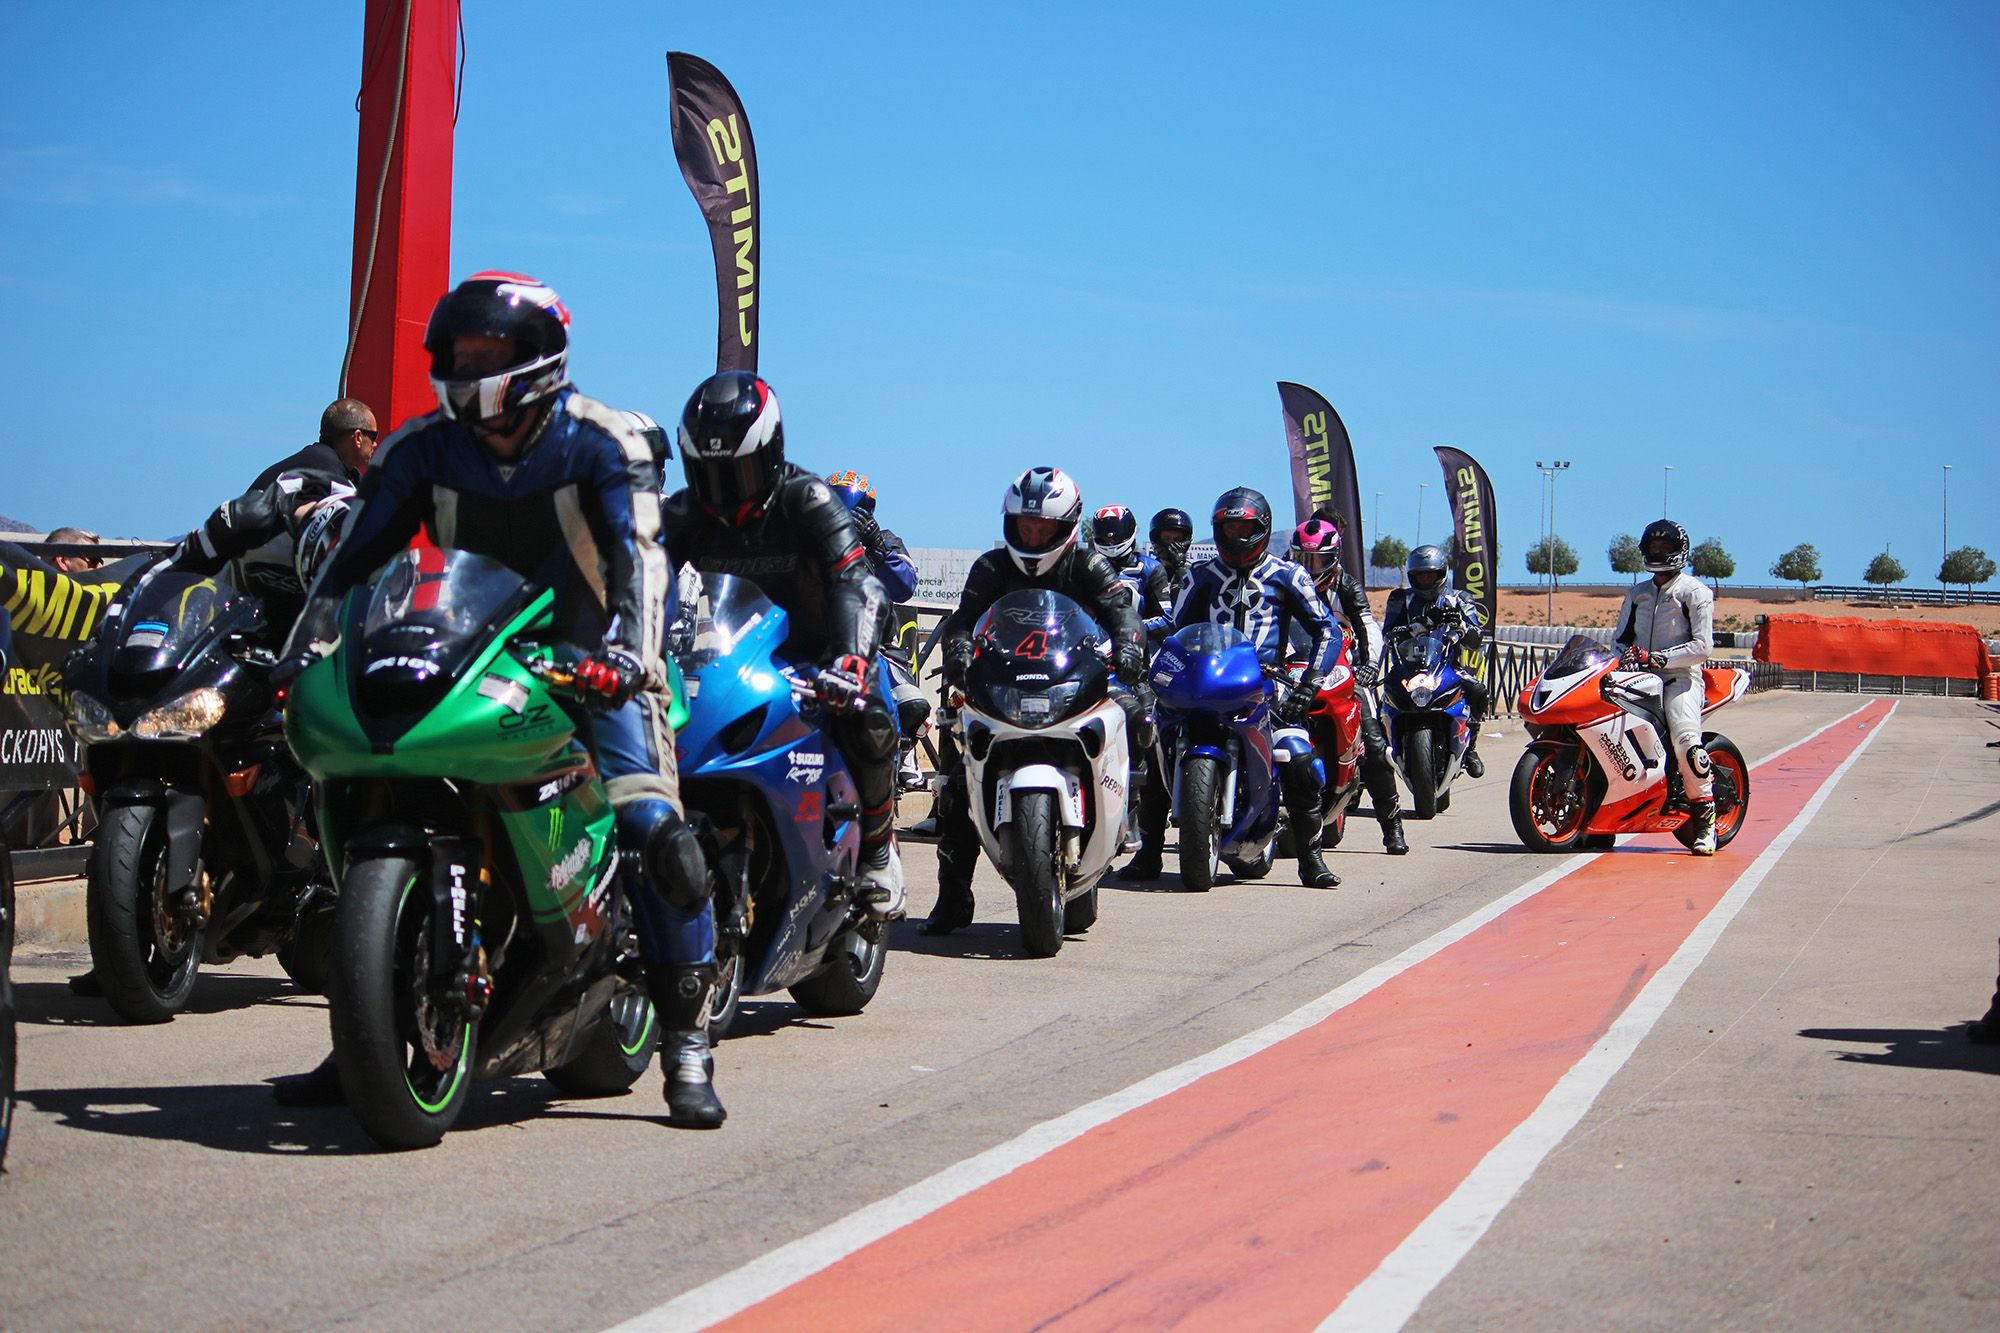 Bikes lining up for a trackday